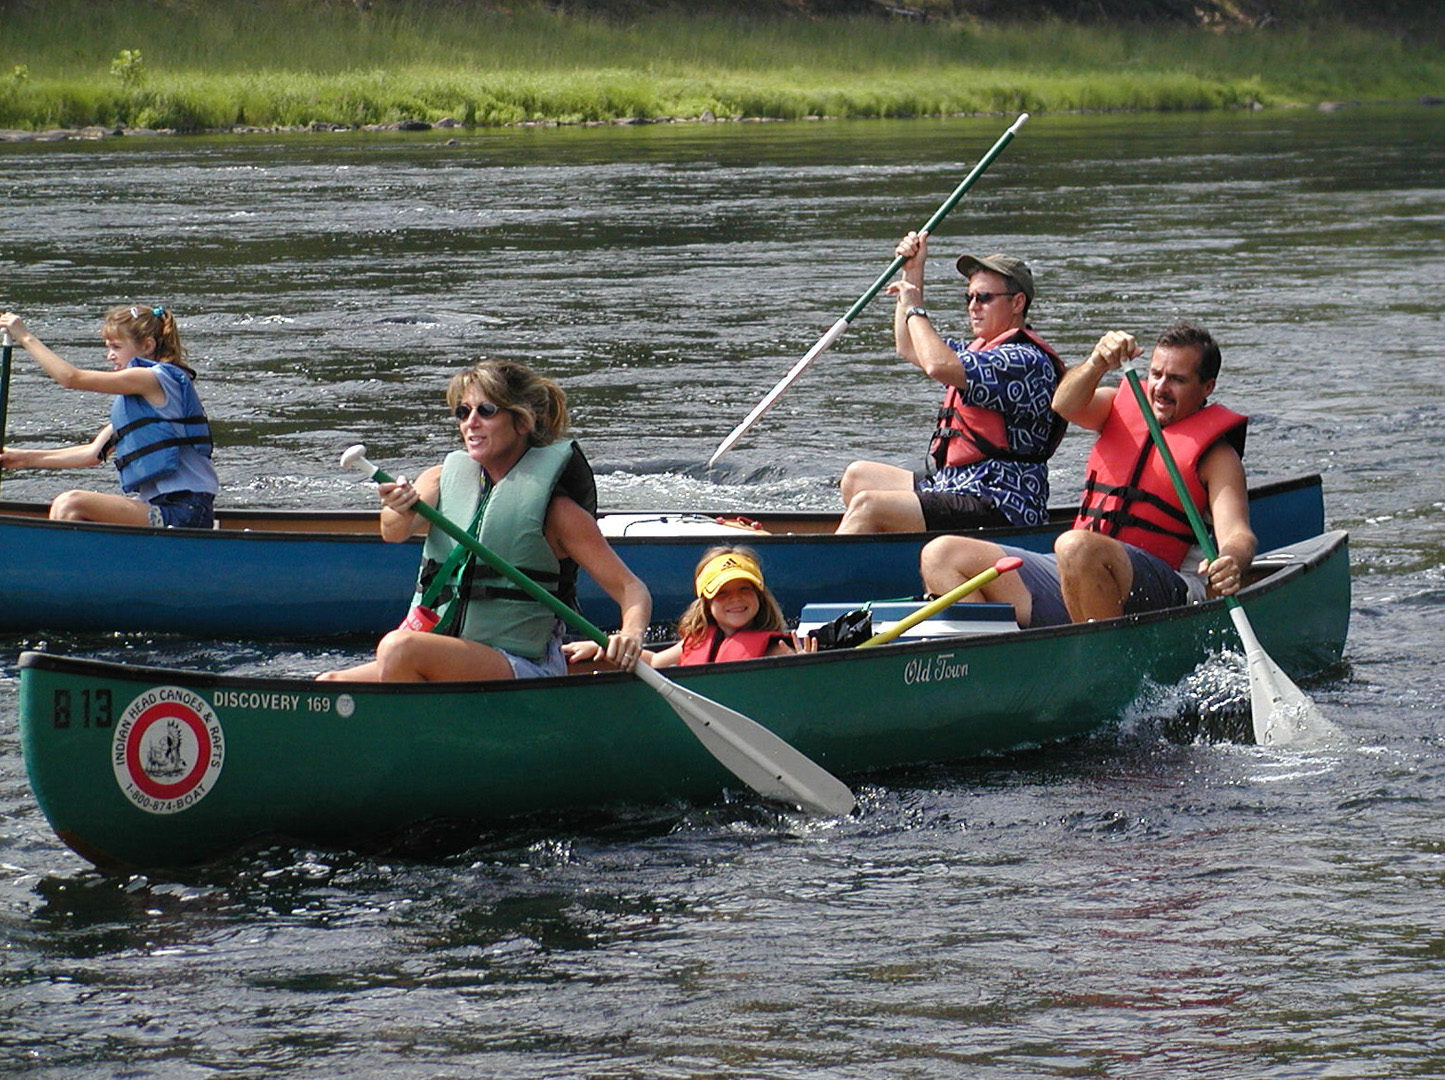 two families on their canoe ride Indian Head Canoeing Rafting Kayaking Tubing Delaware River